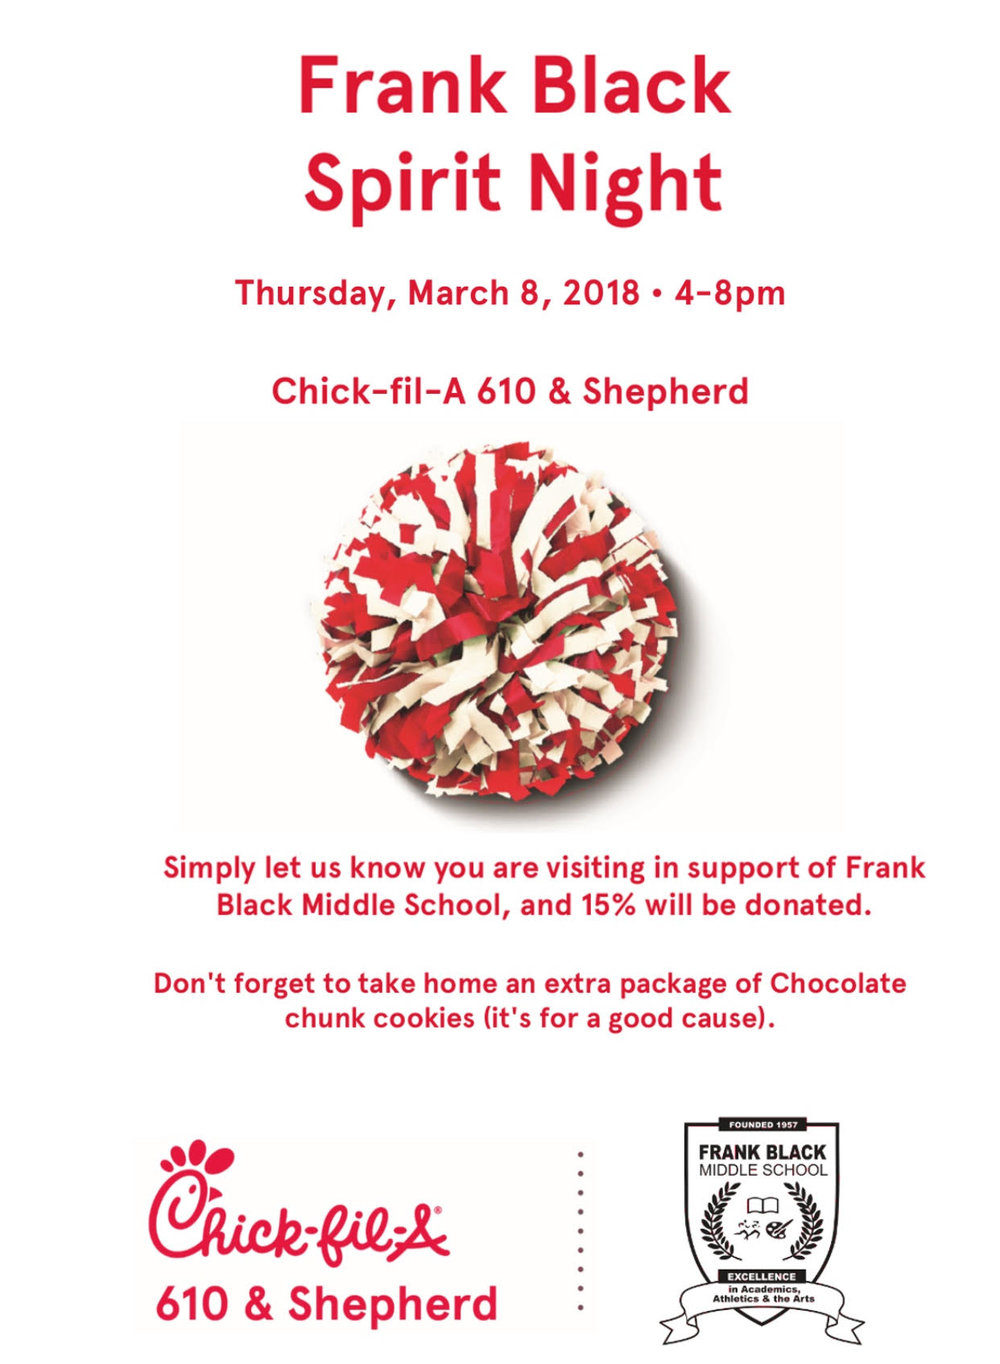 Spirit Night - Come be a part of Spirit Night this Thursday, March 8th from 4pm-8pm at Chick-fil-A on 610/Shepherd. Hope to see you there!!!